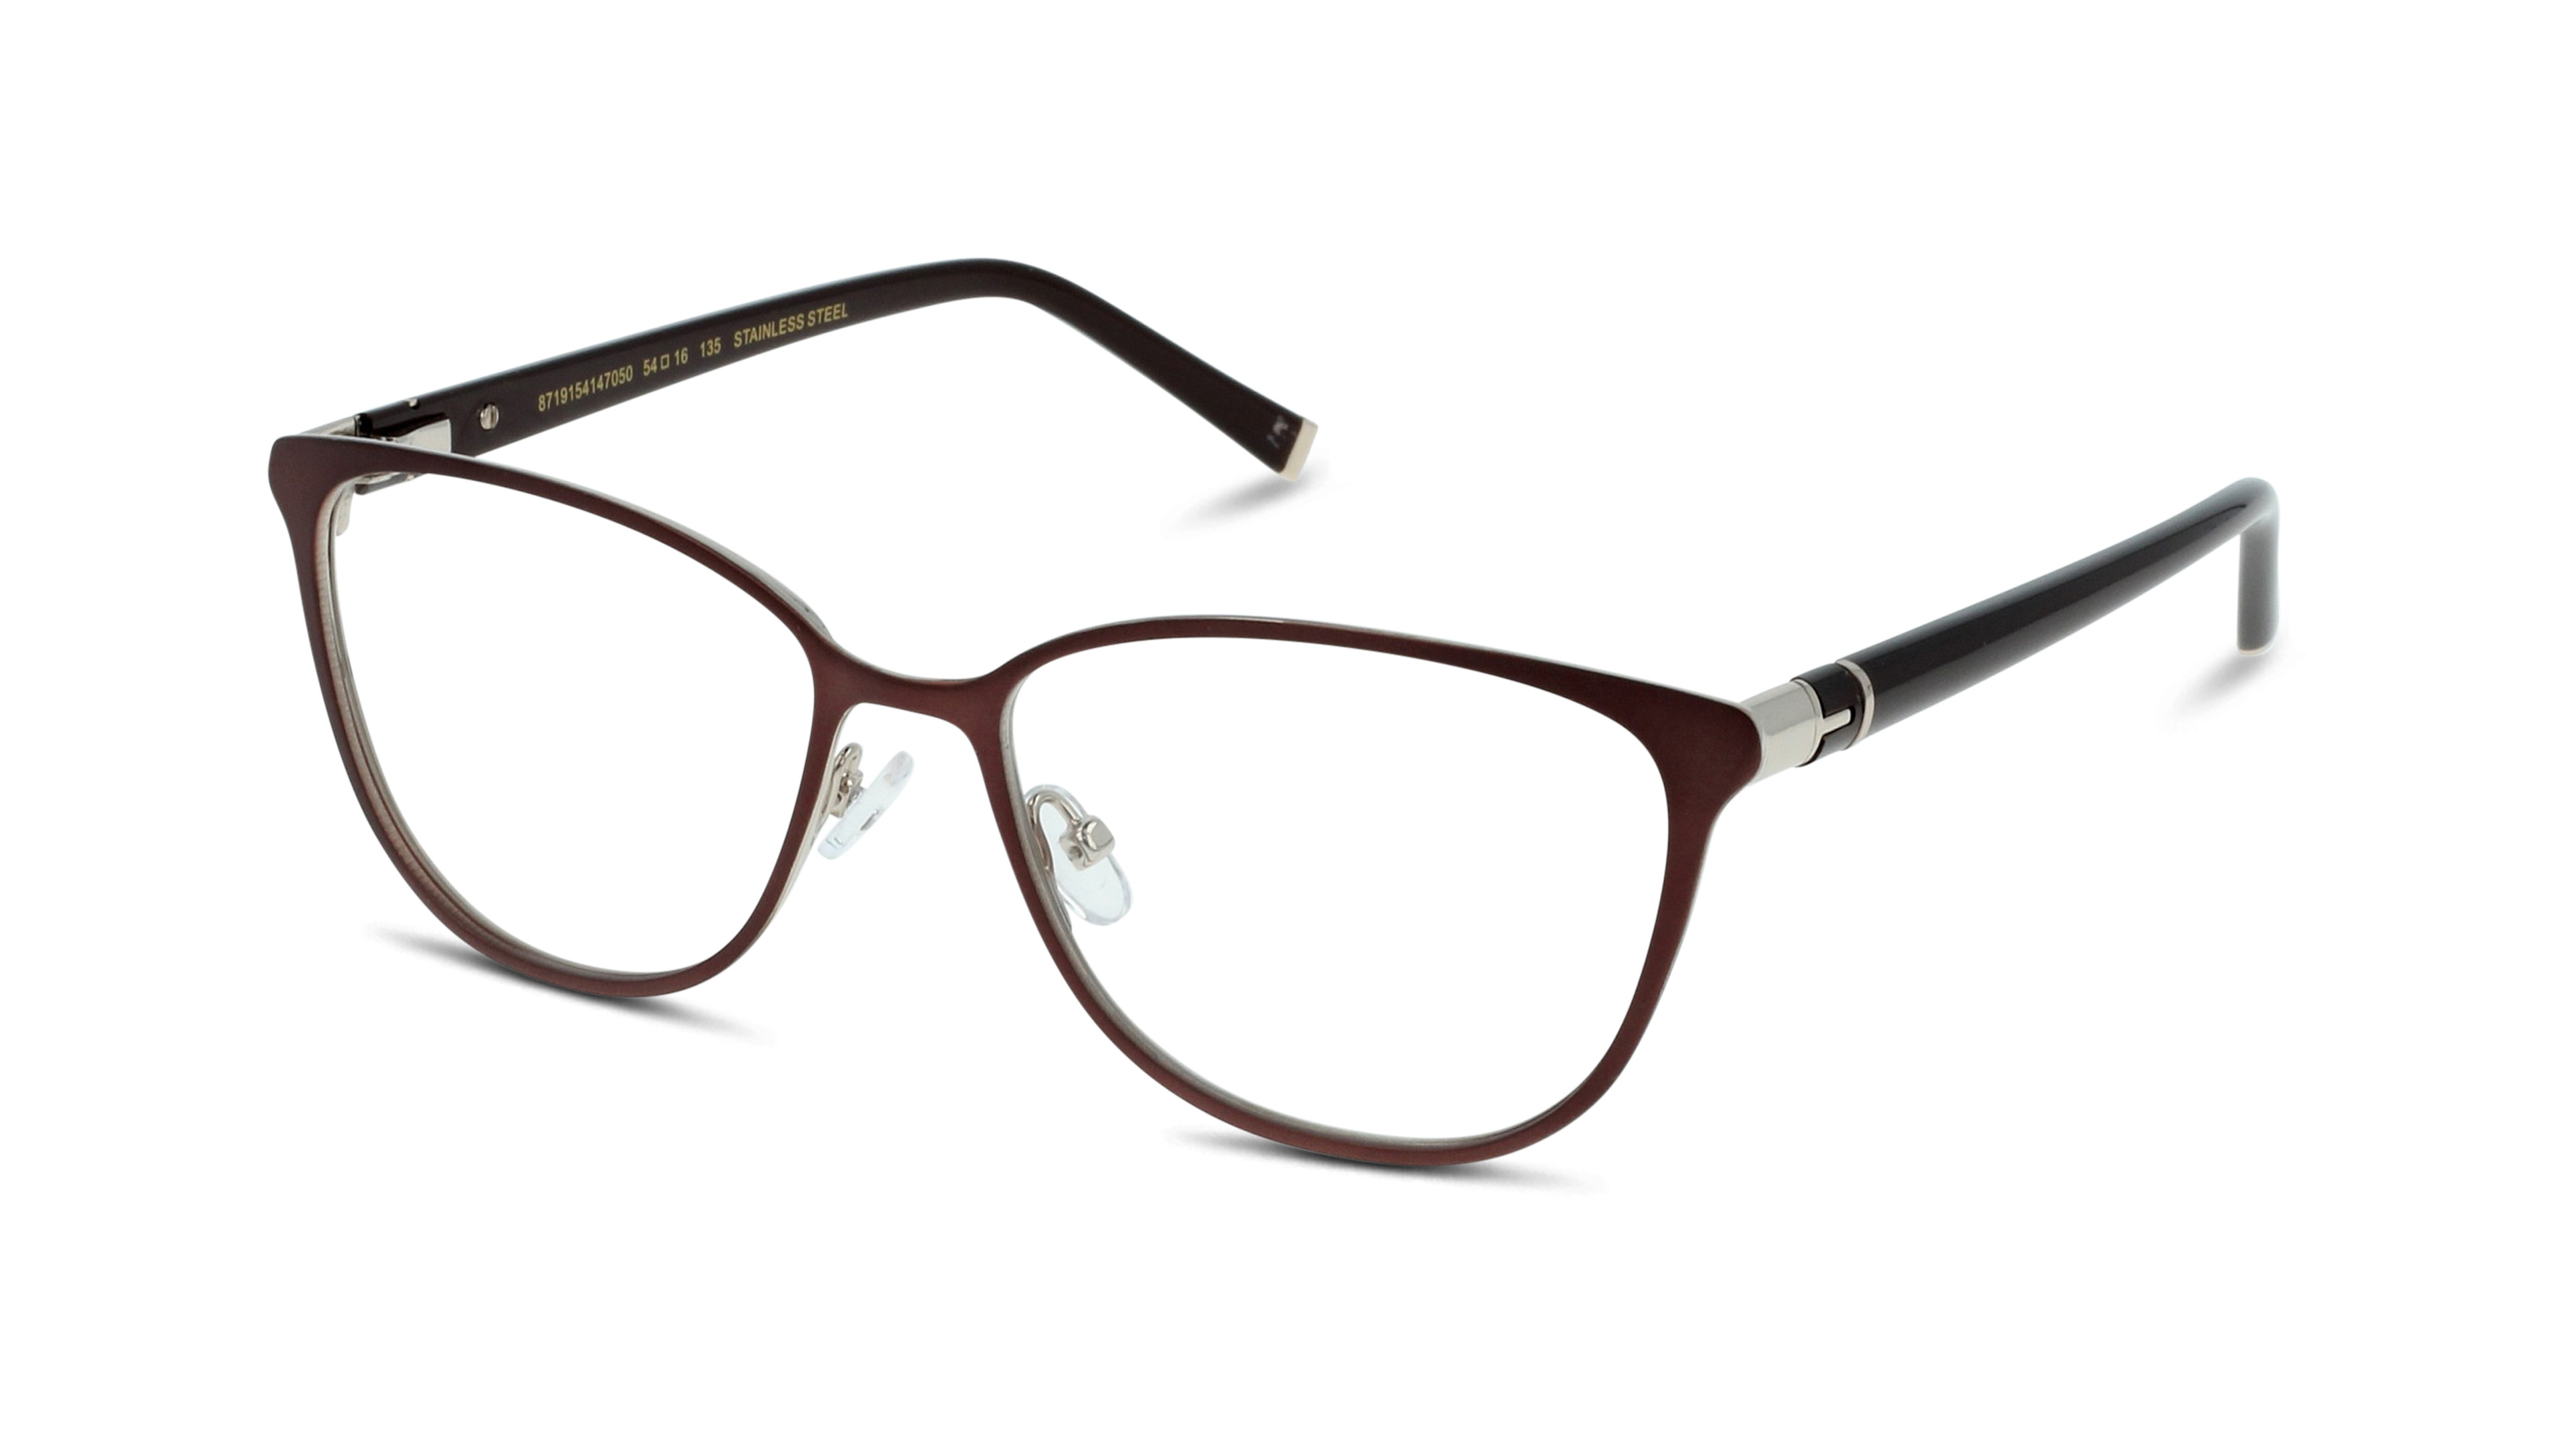 8719154622199-angle-01-heritage-hedf30-montagnana-brown-gold